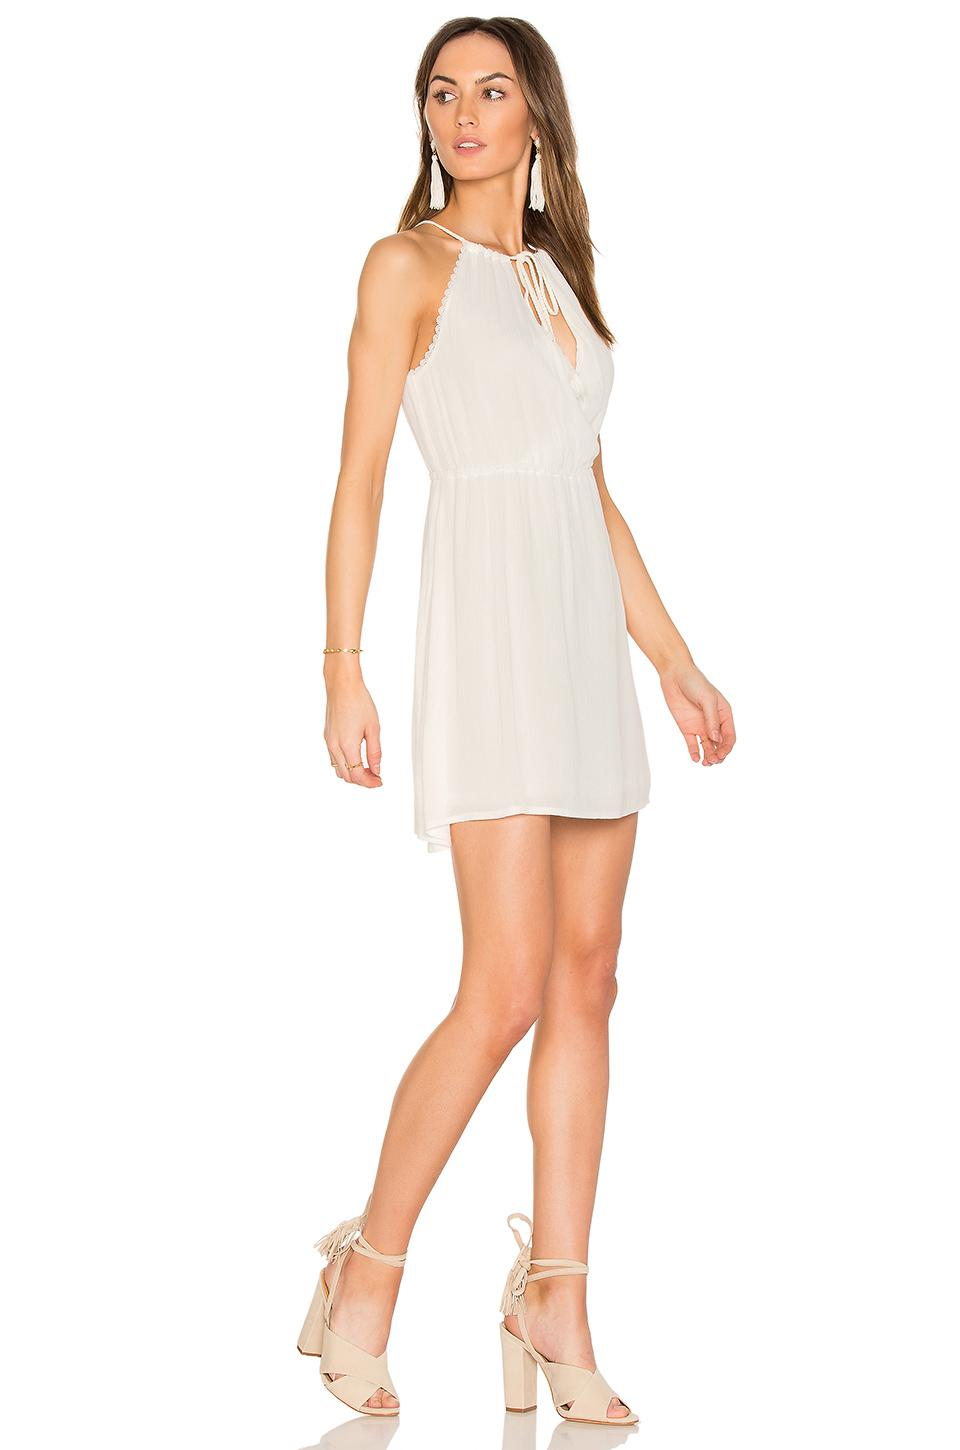 Inexpensive Sale Online Authentic Womens The Babe Dress Wyldr Cheap Sale The Cheapest SZm1j6